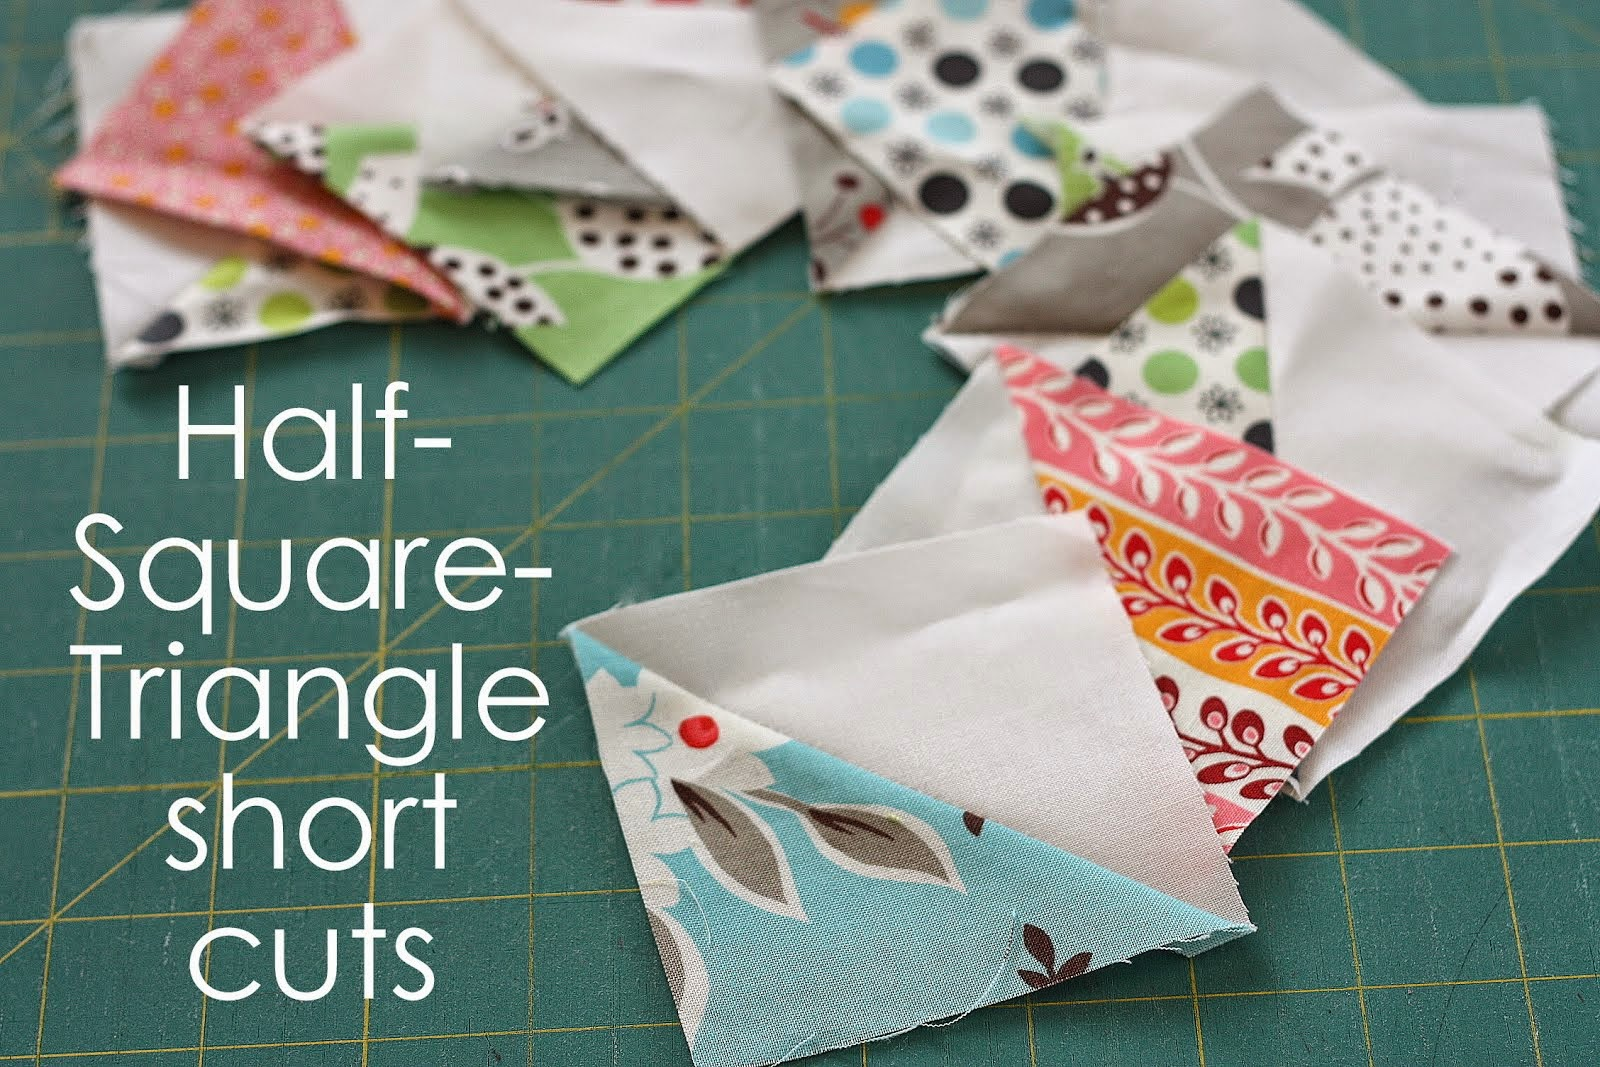 Half Square Triangle Short Cuts